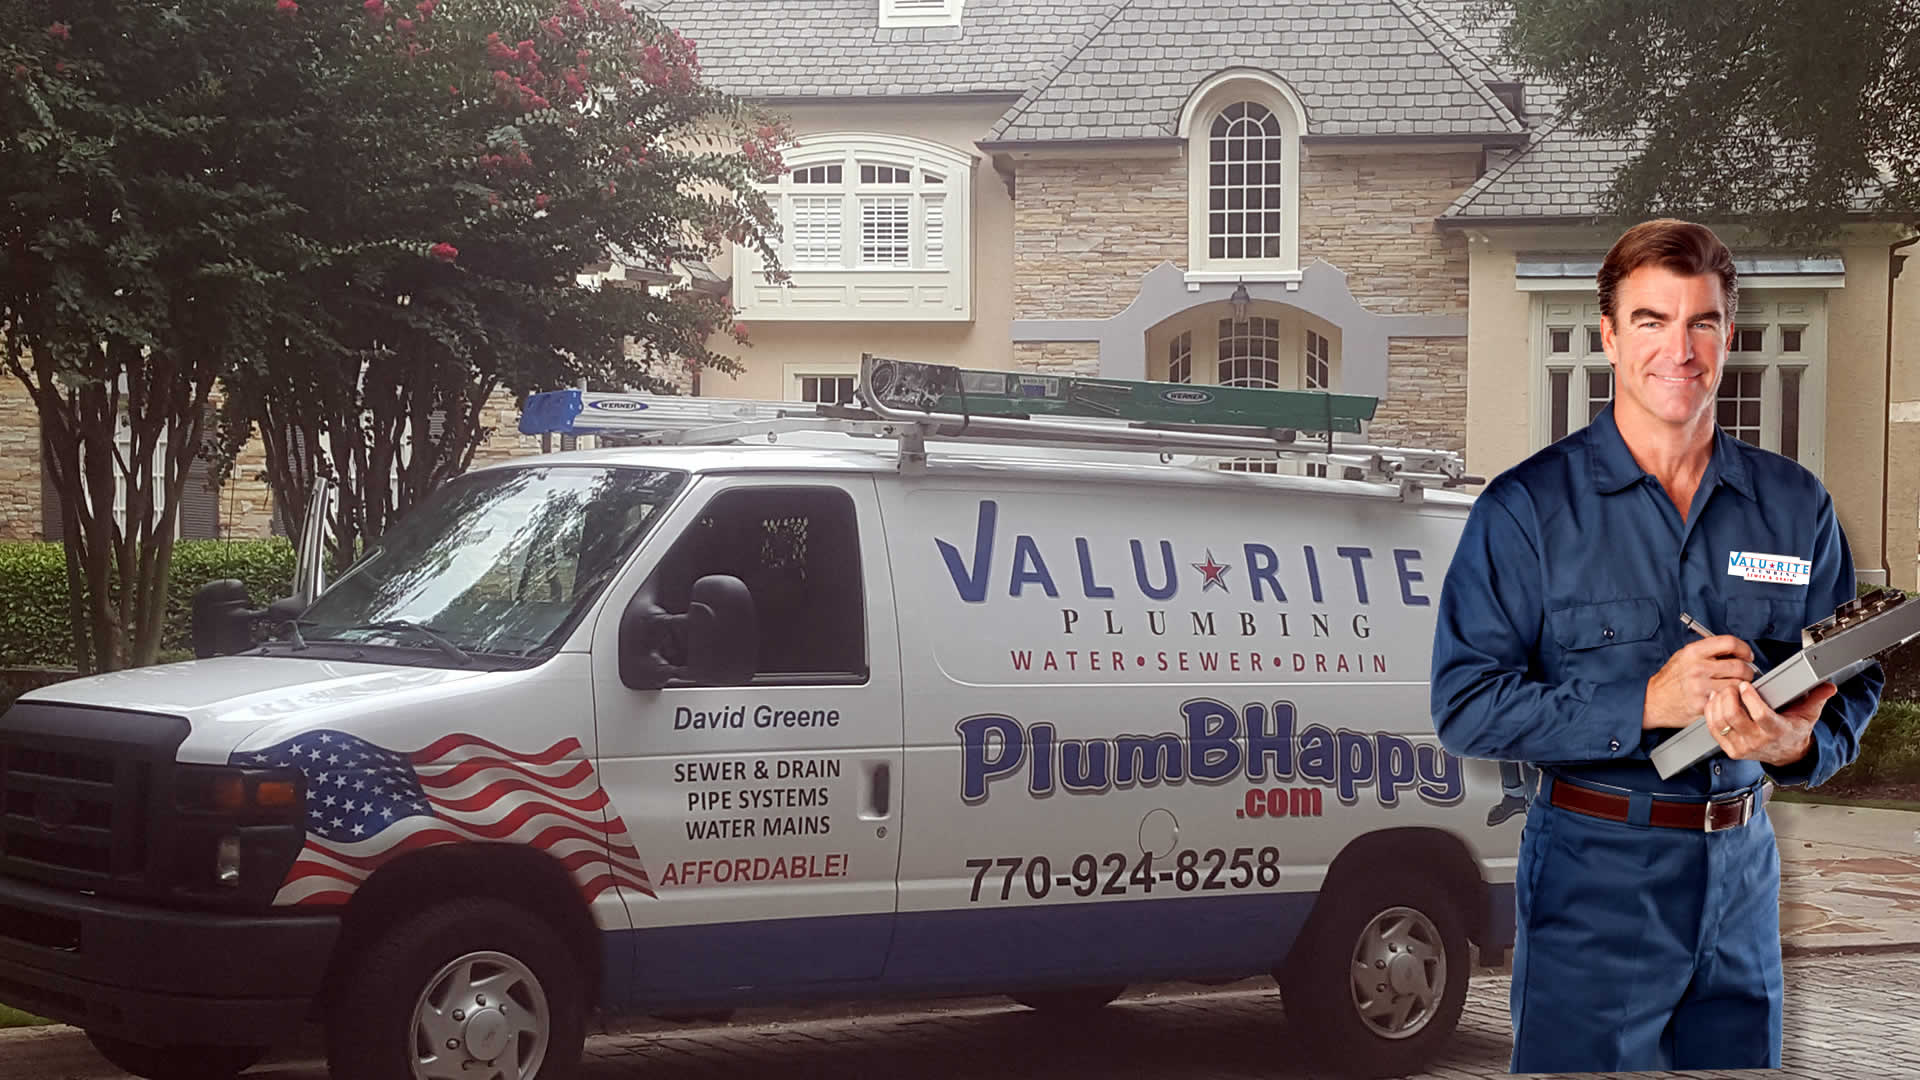 Reputable insured and licensed master plumber repair service with 32 years experience serving <? echo Canton; ?> Ga.